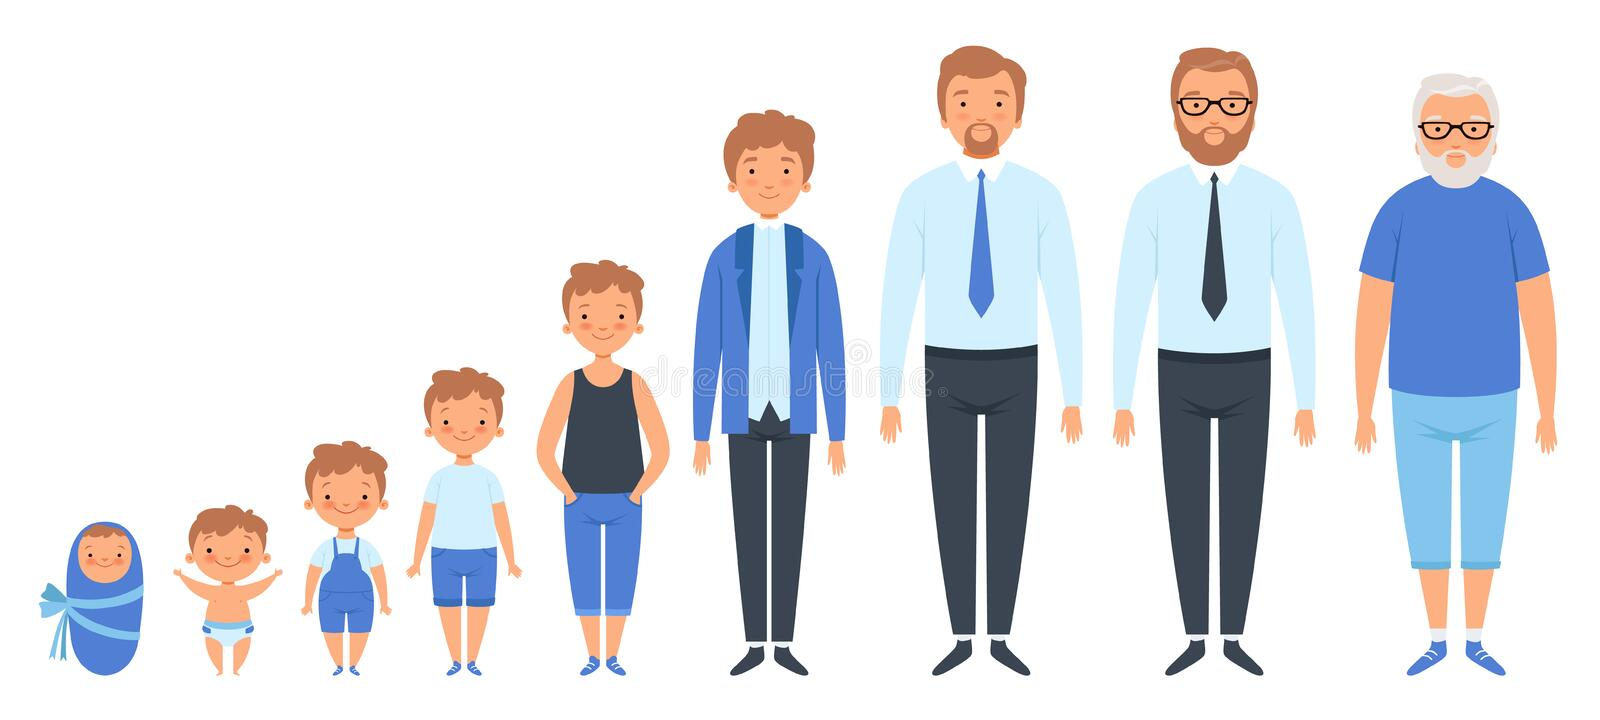 Male different ages. Newborn teenage boy man person old grandfather adult peoples vector clipart isolated royalty free illustration